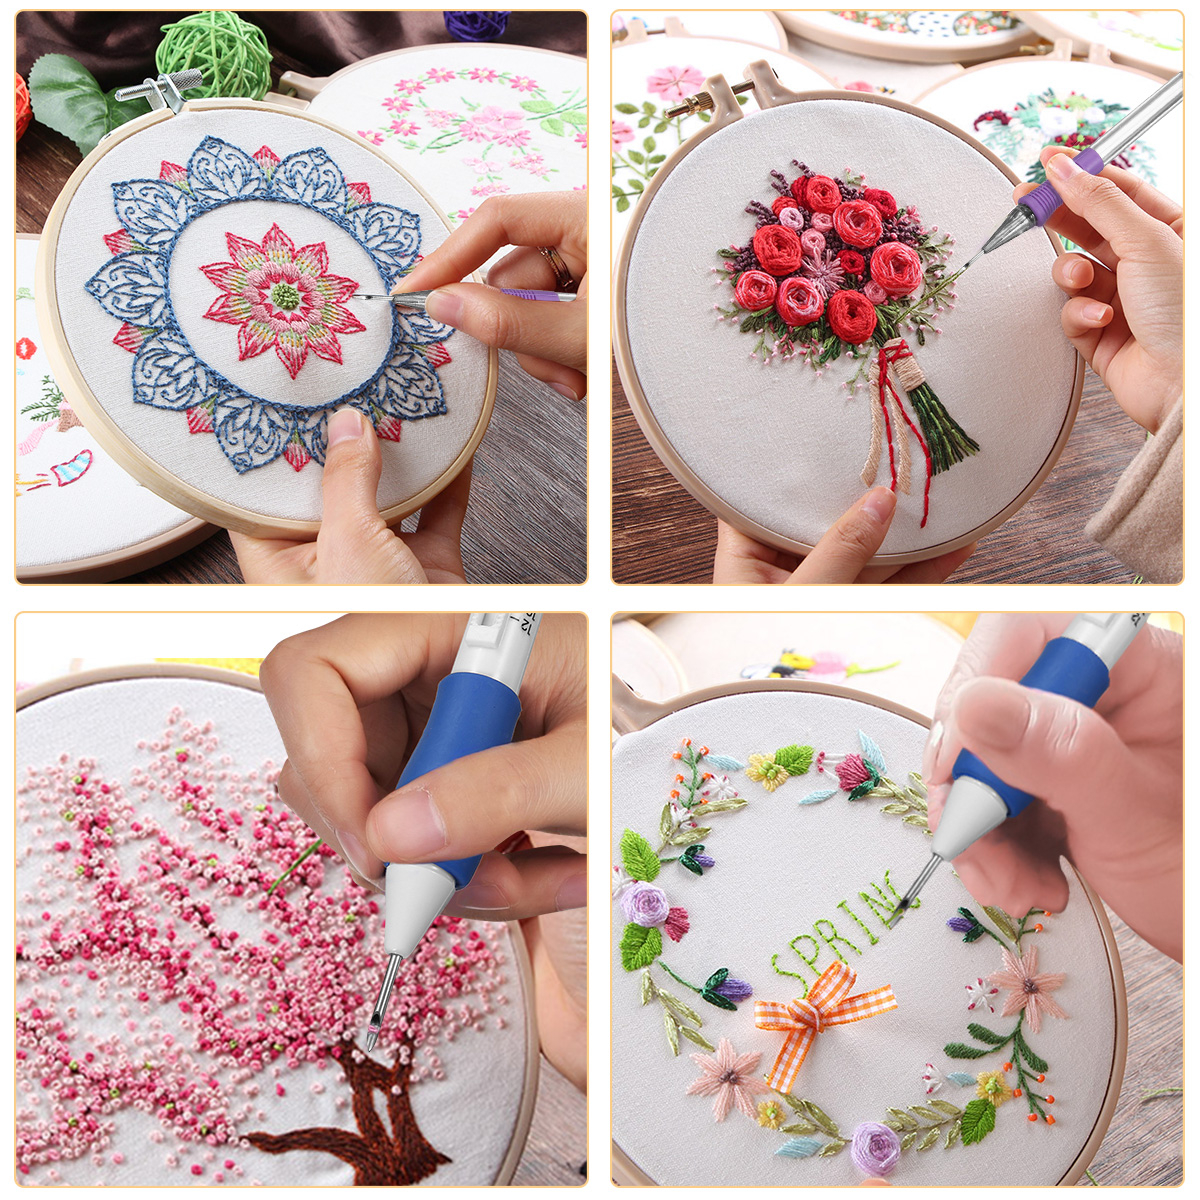 Free Punch Needle Embroidery Patterns Magic Embroidery Pen Punch Needle Set Embroidery Patterns Punch Needle Kit Knitting Sewing Diy Tool